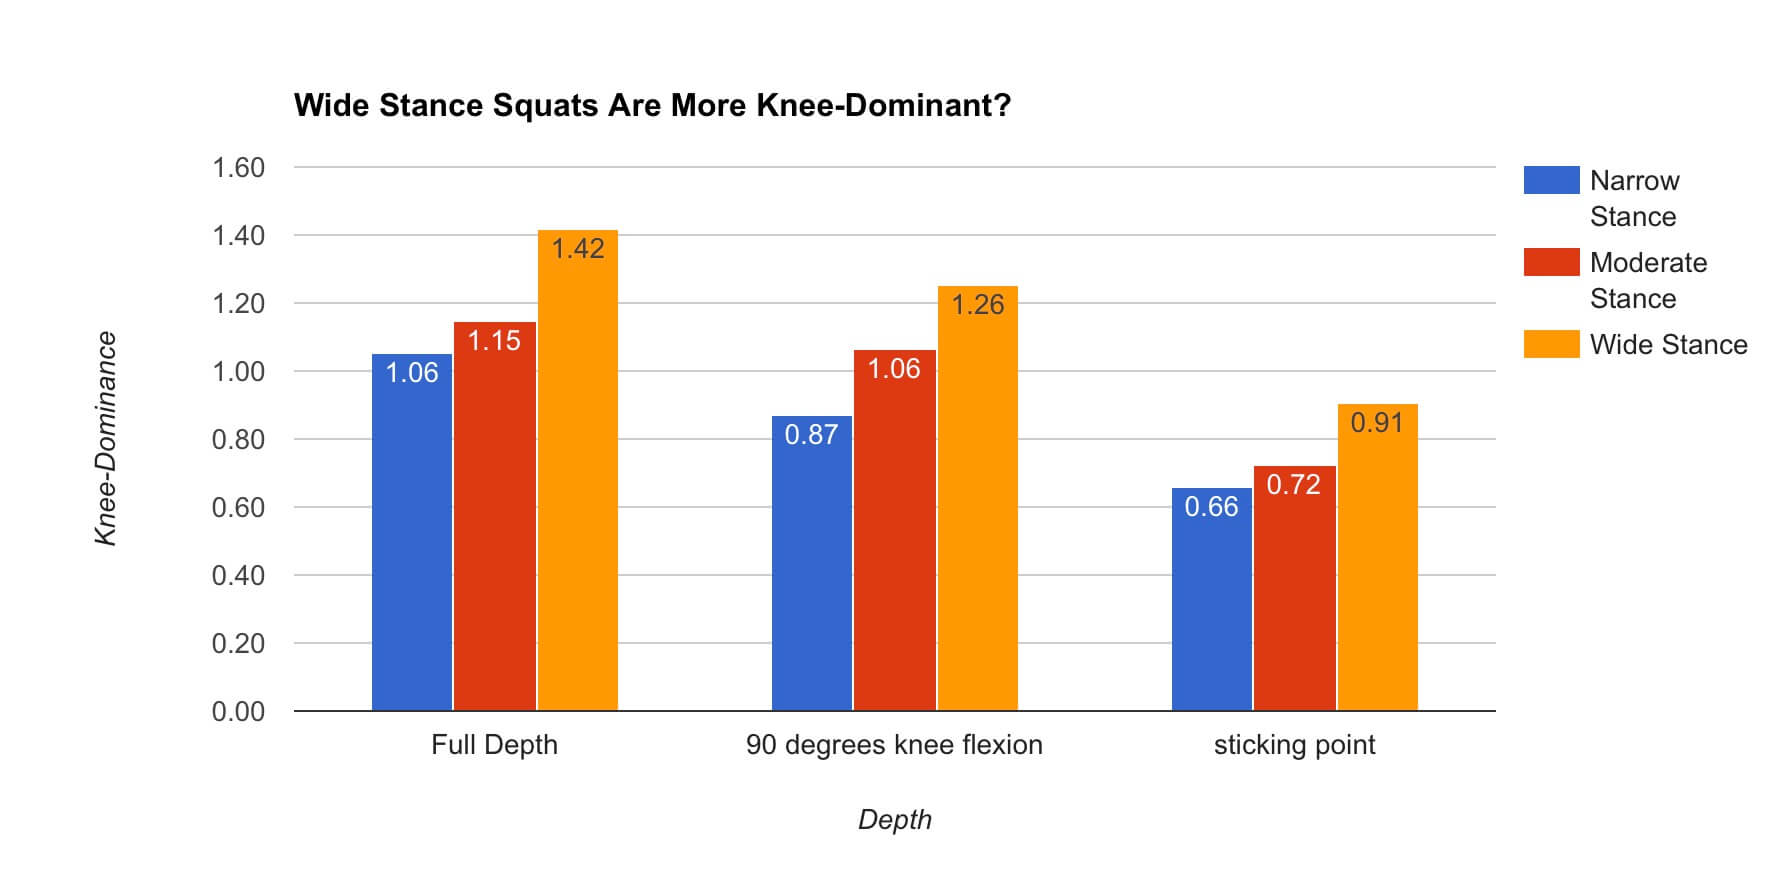 Close stance squat vs moderate stance squat vs wide stance squat knee-dominance